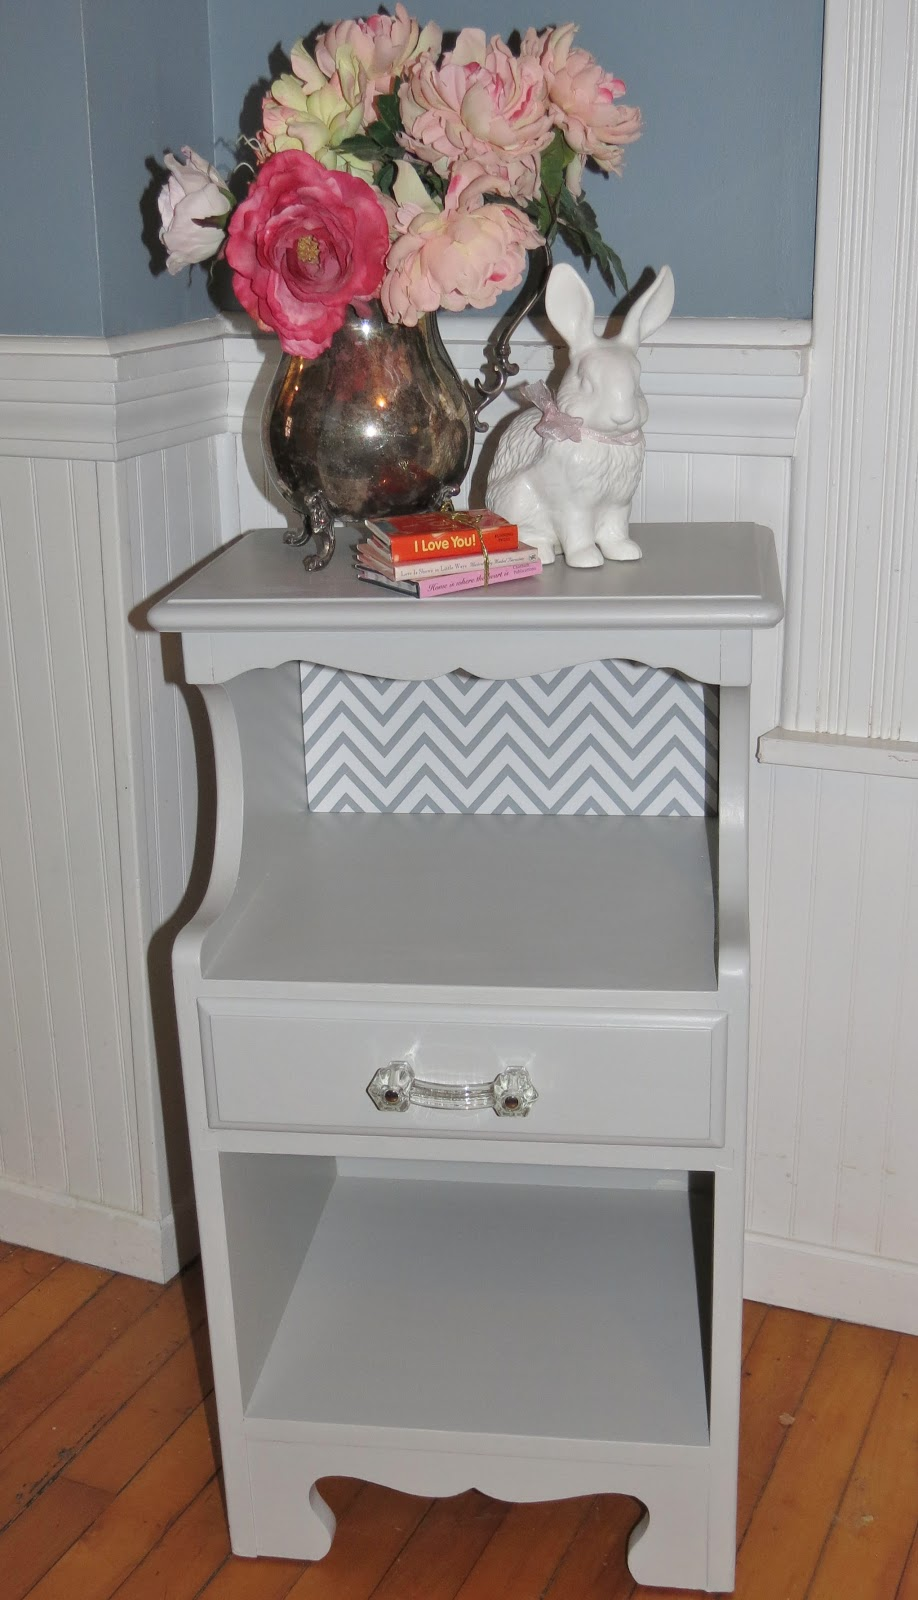 While I Linger: A Yard Sale Night Stand